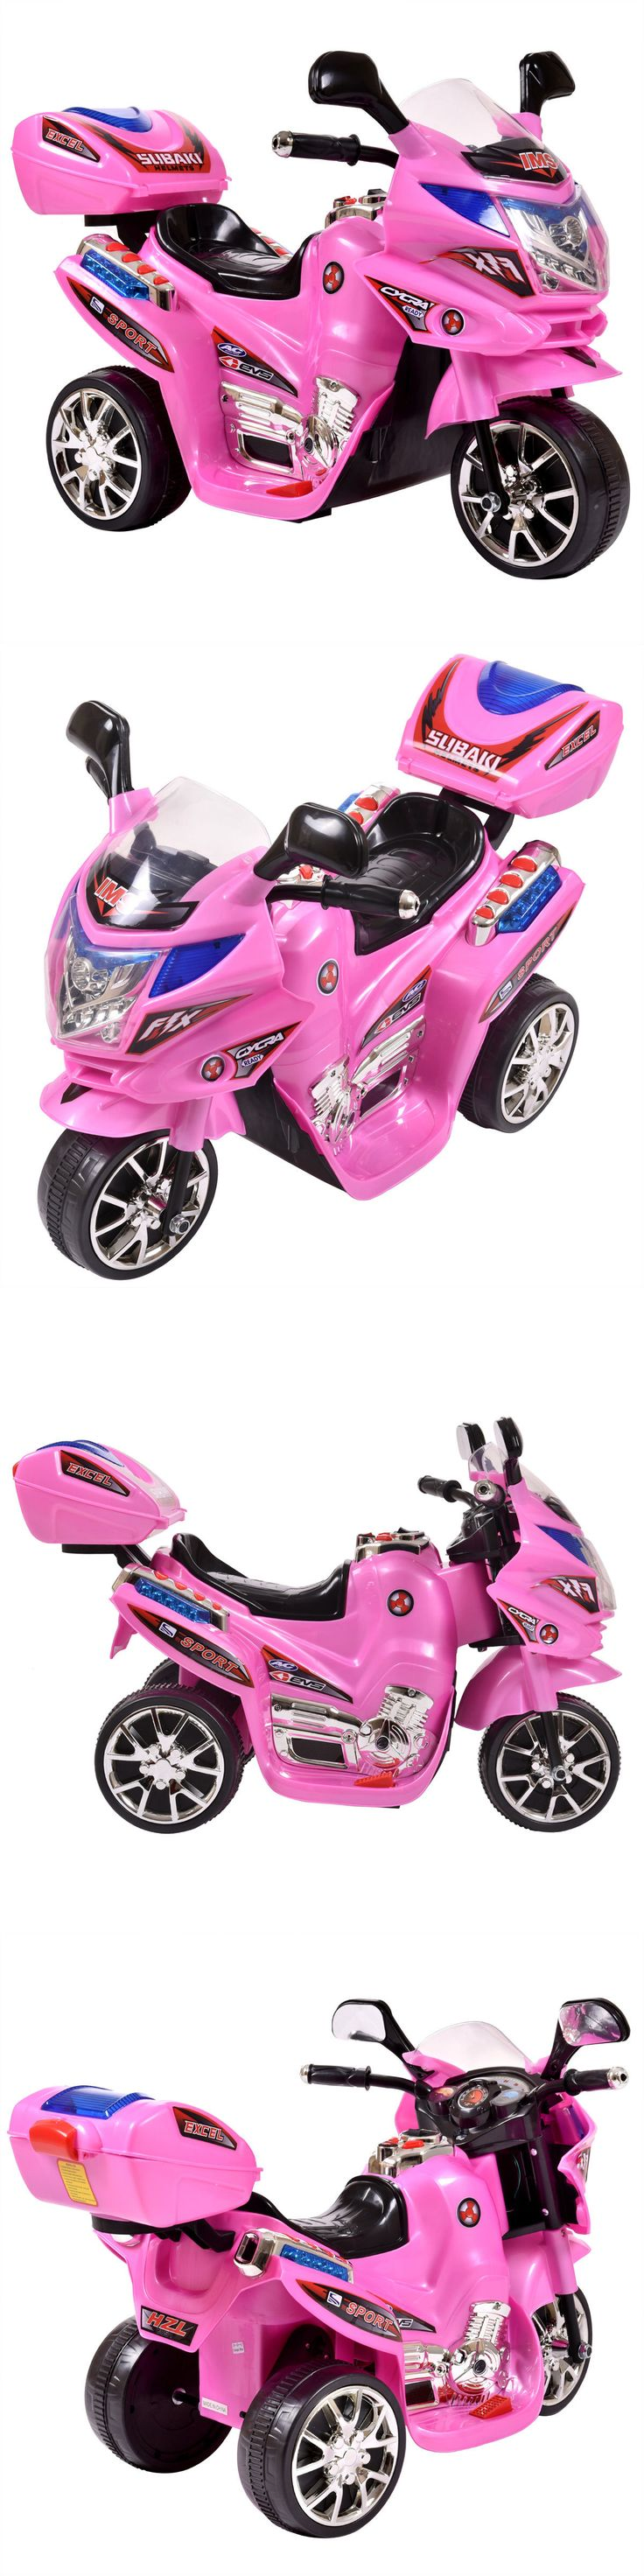 Ride On Toys and Accessories 145944: 3 Wheels Power Motorcycle Battery Powered Kids Ride On Baby Car Pink 6V -> BUY IT NOW ONLY: $46.99 on eBay!